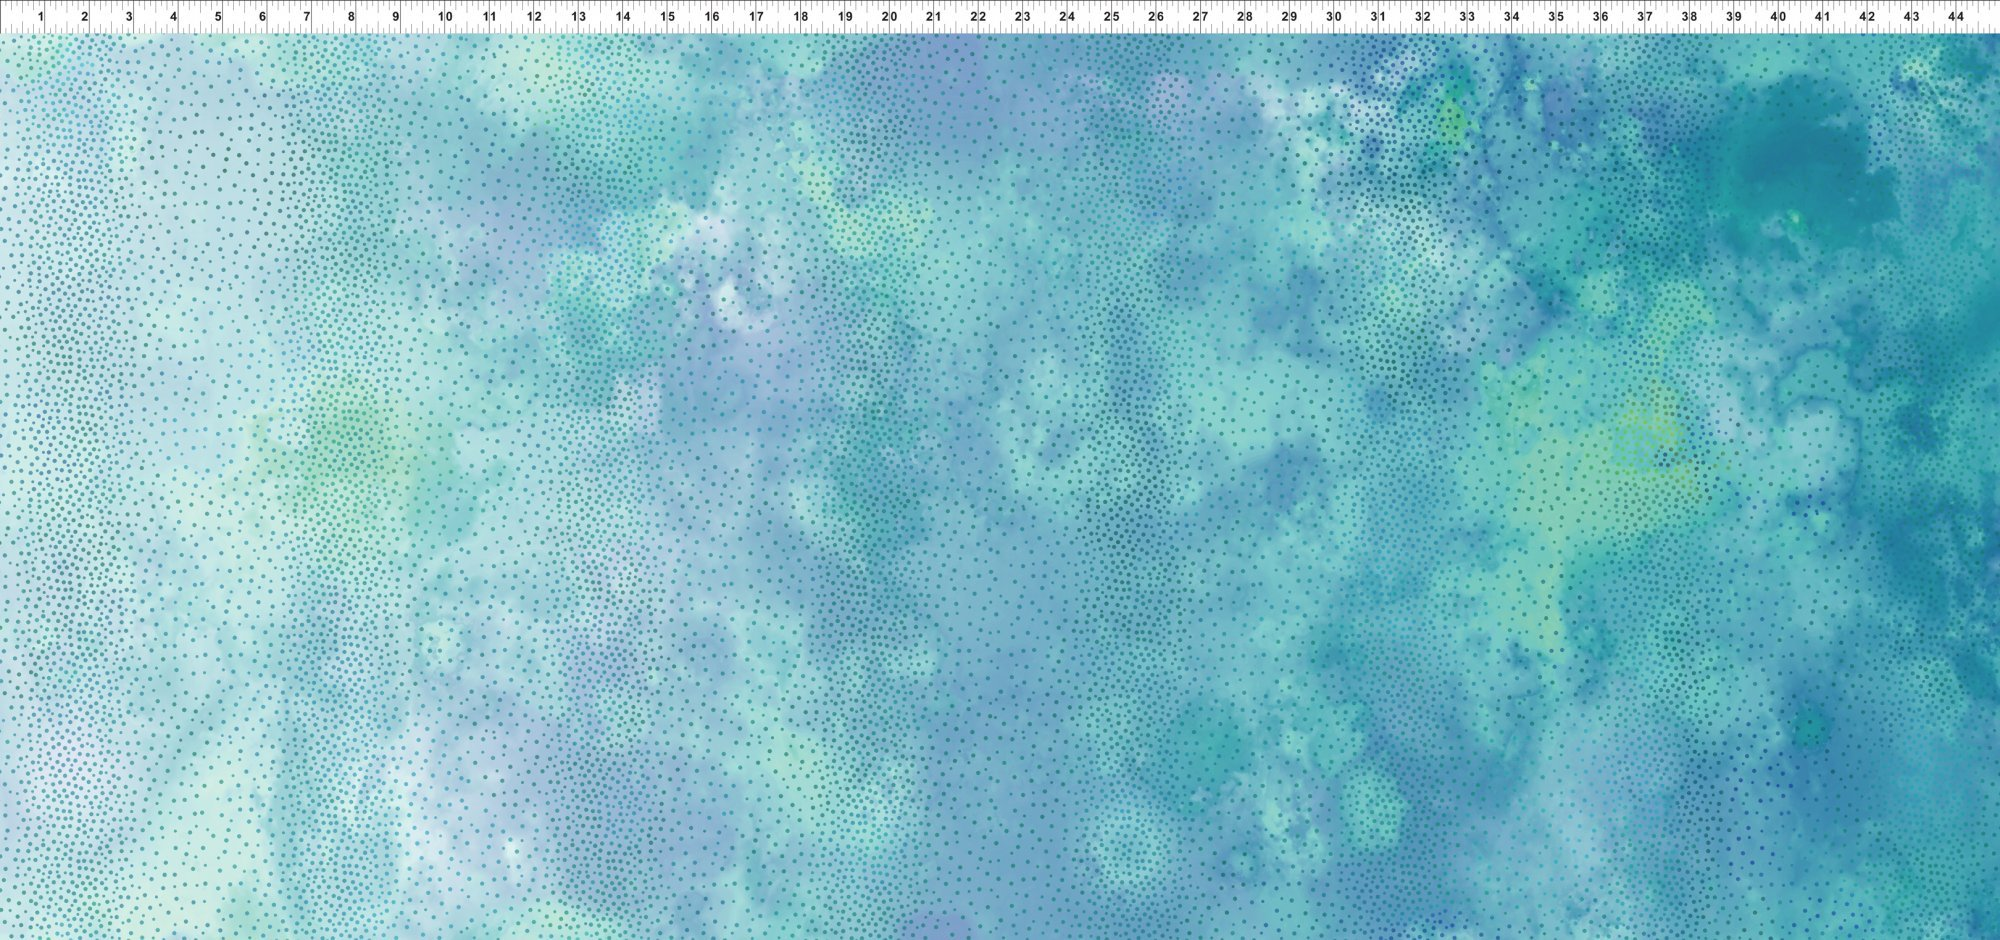 Diaphanous-blue colorwash with dots